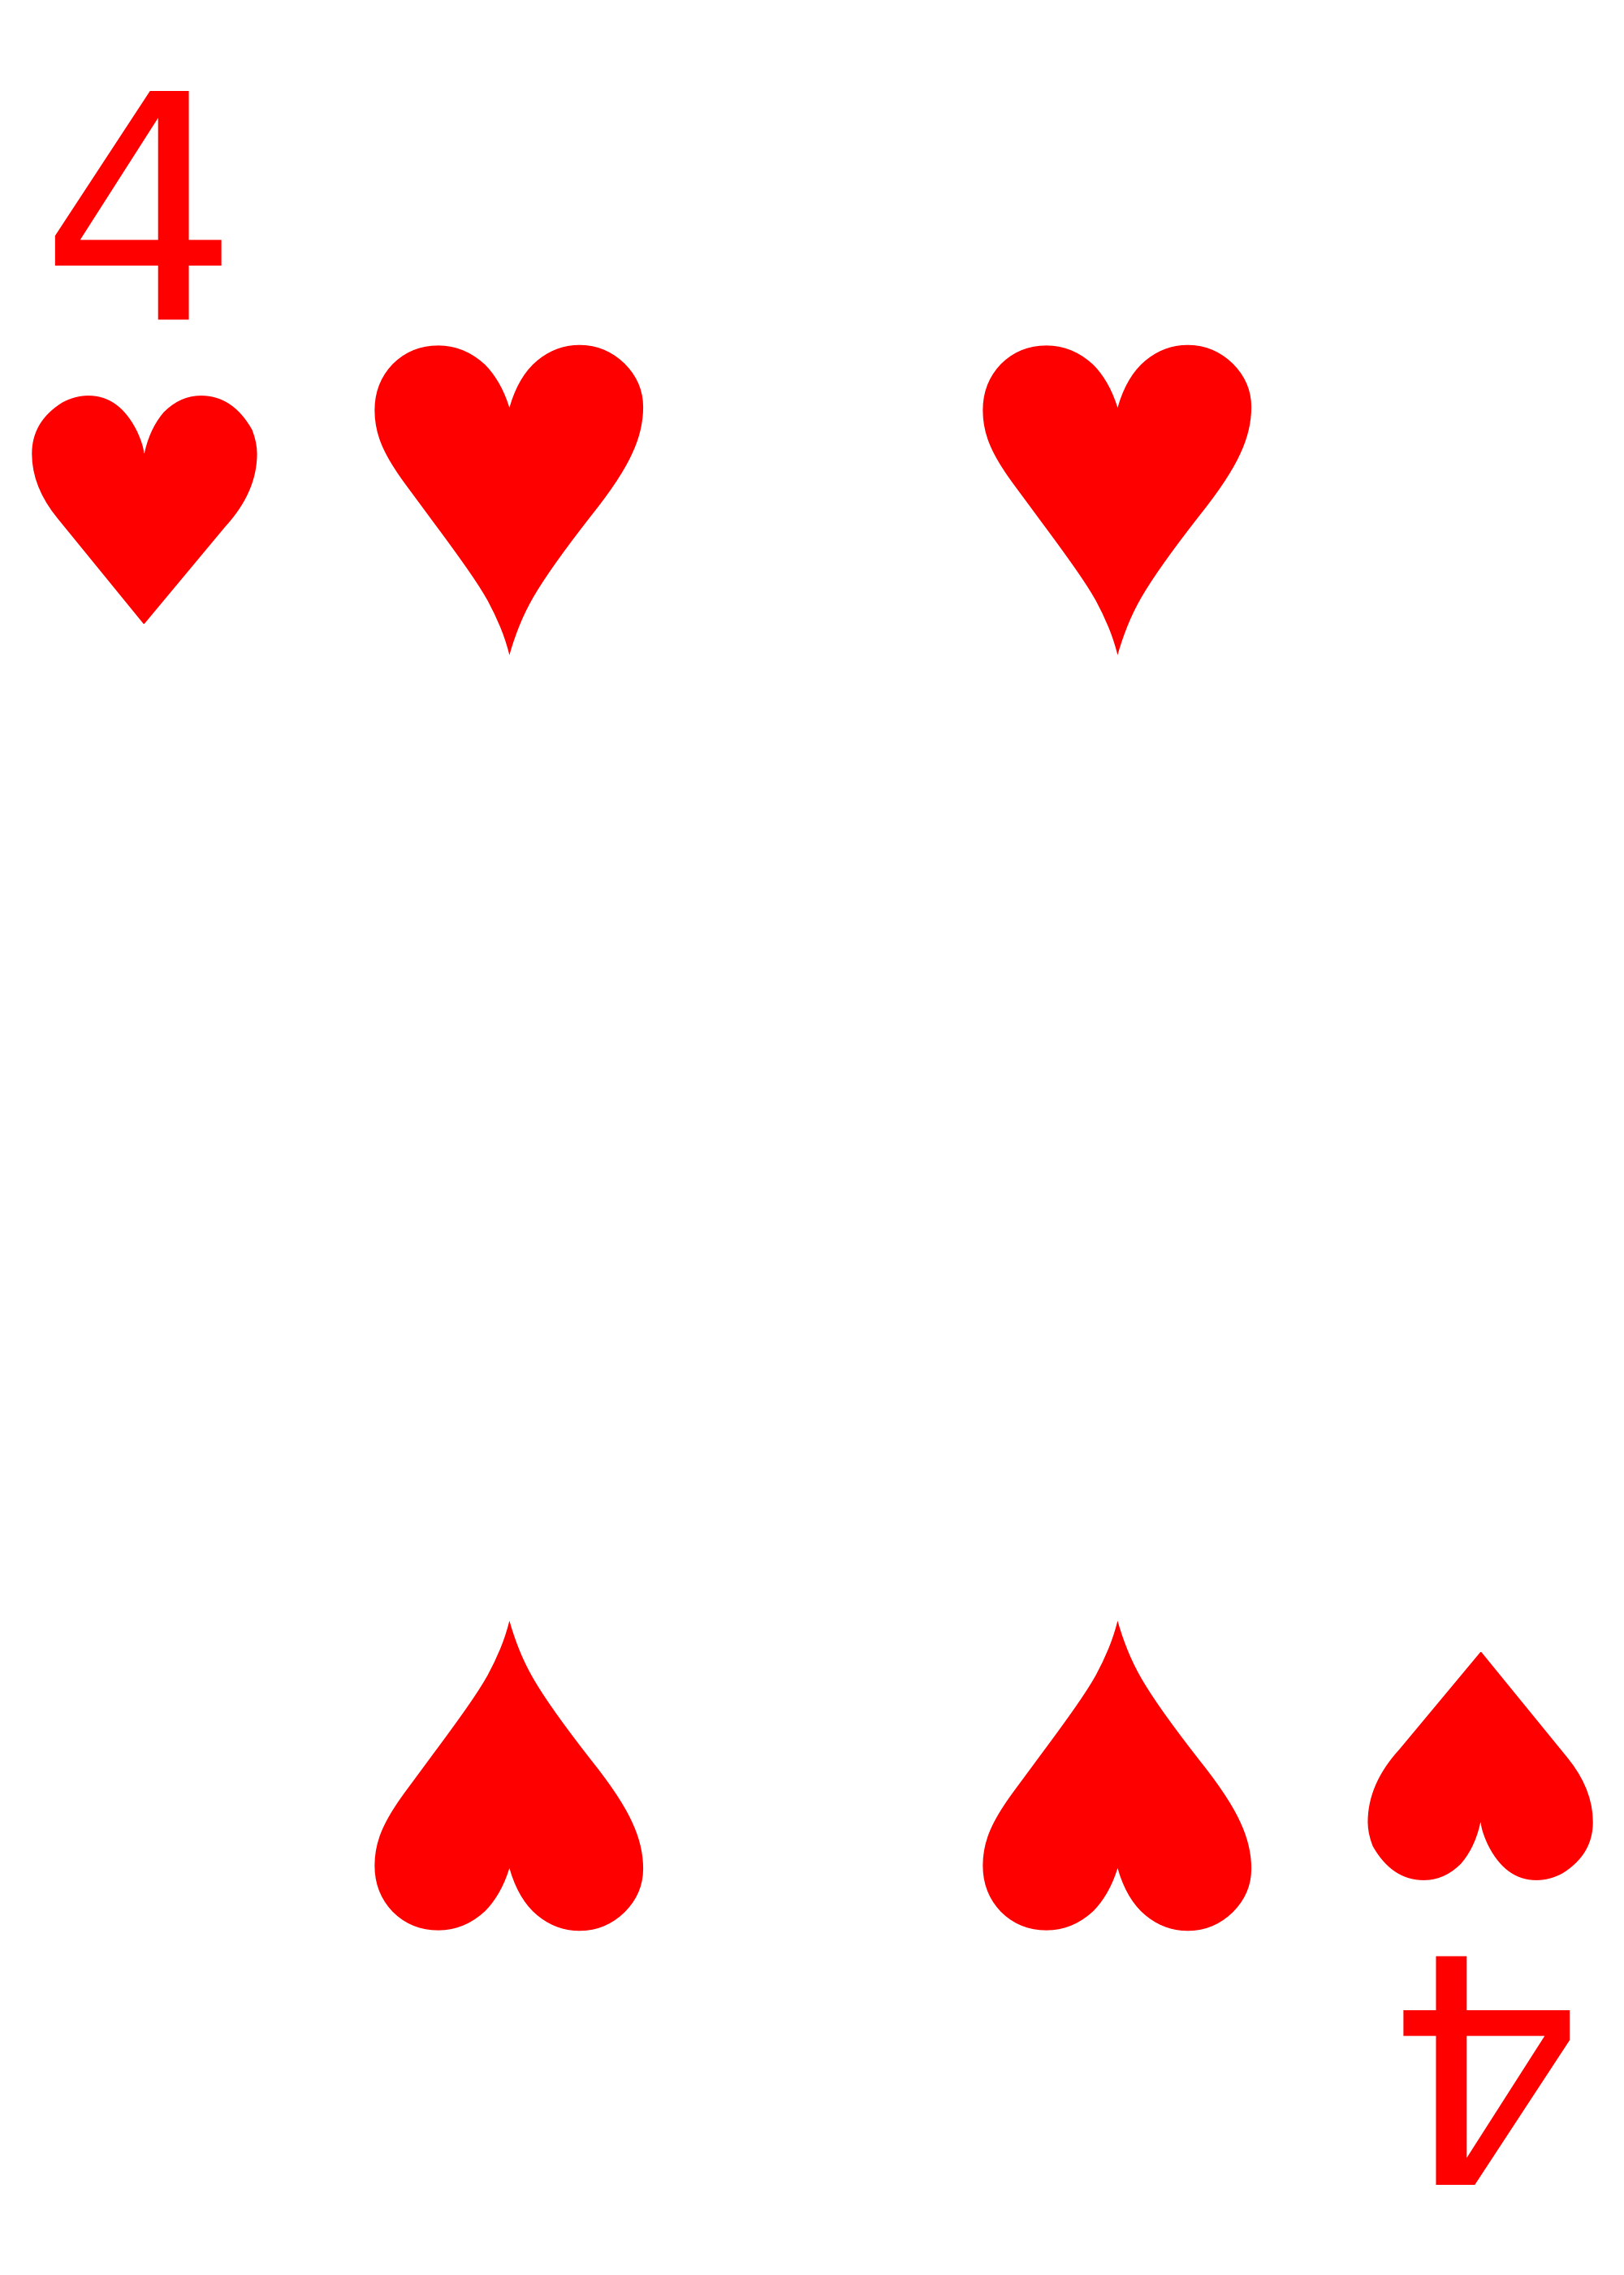 Baseball lace clipart picture royalty free stock File:Cards-4-Heart.svg - Wikimedia Commons picture royalty free stock